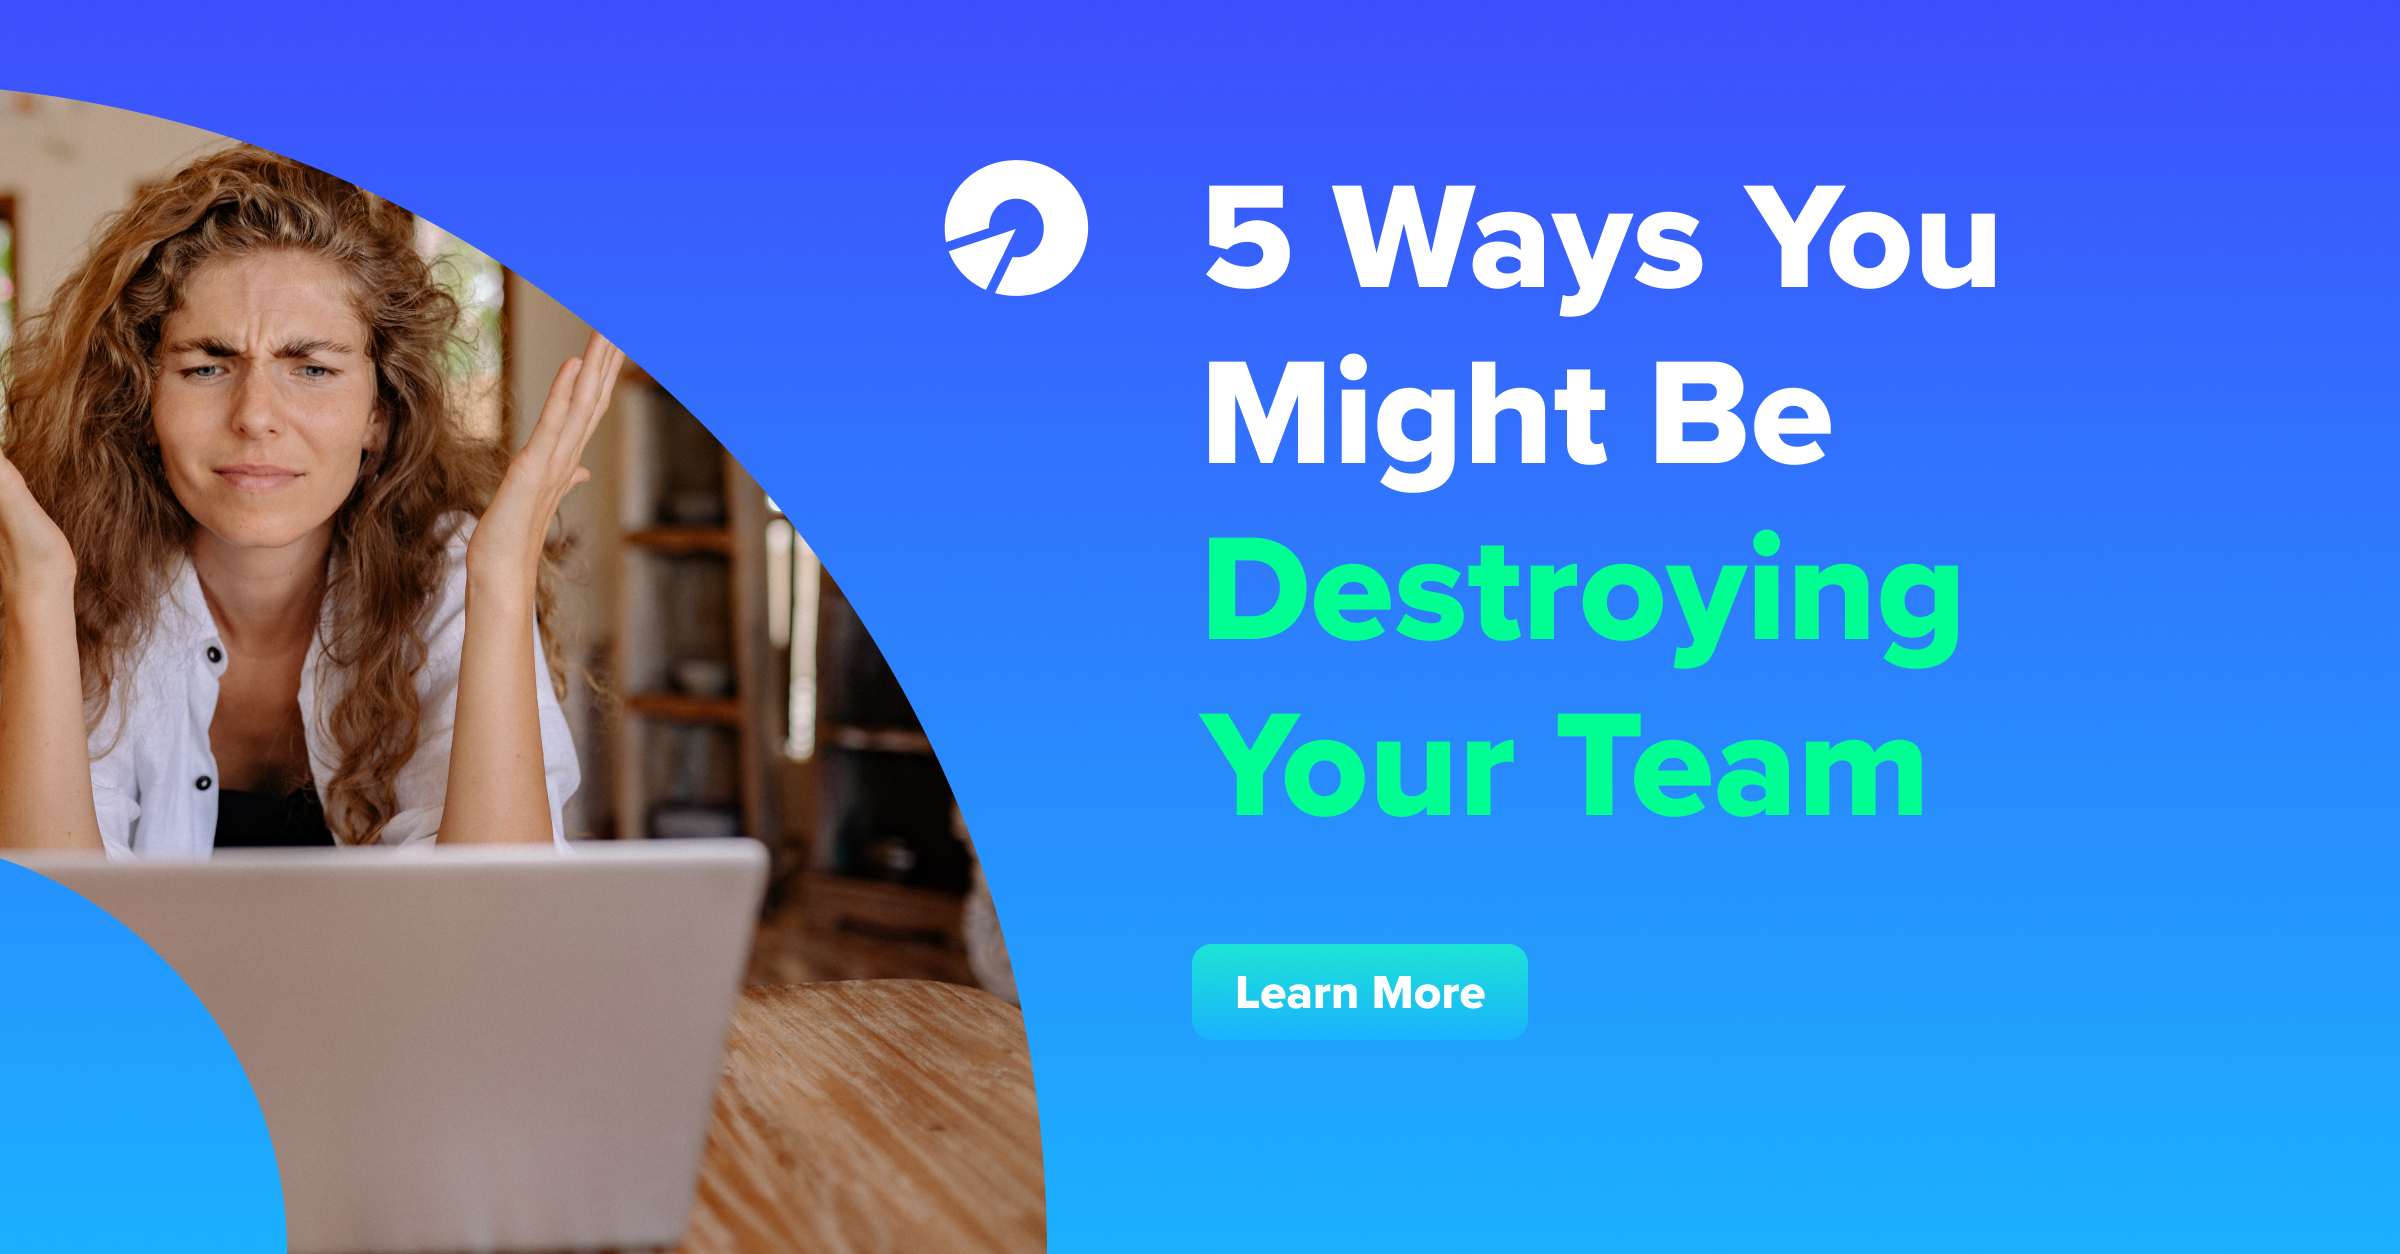 5 Ways You Might Be Destroying Your Team